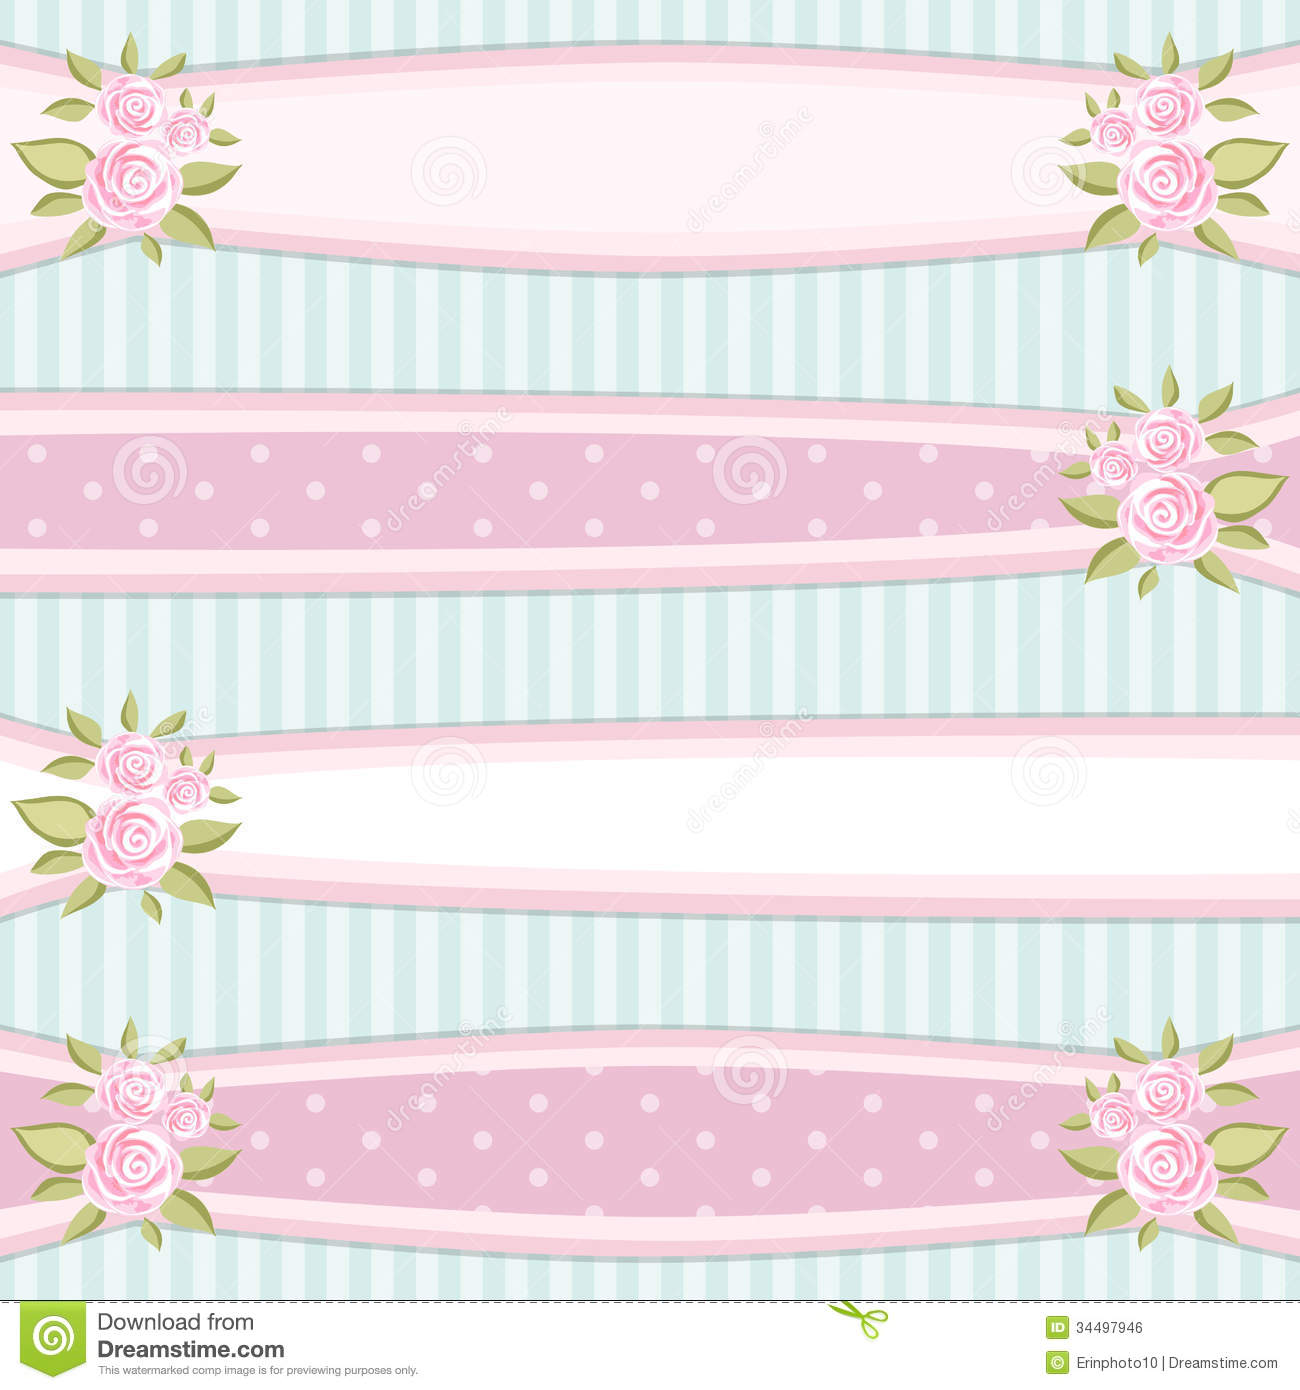 Vintage Ribbons Illustration 34497946